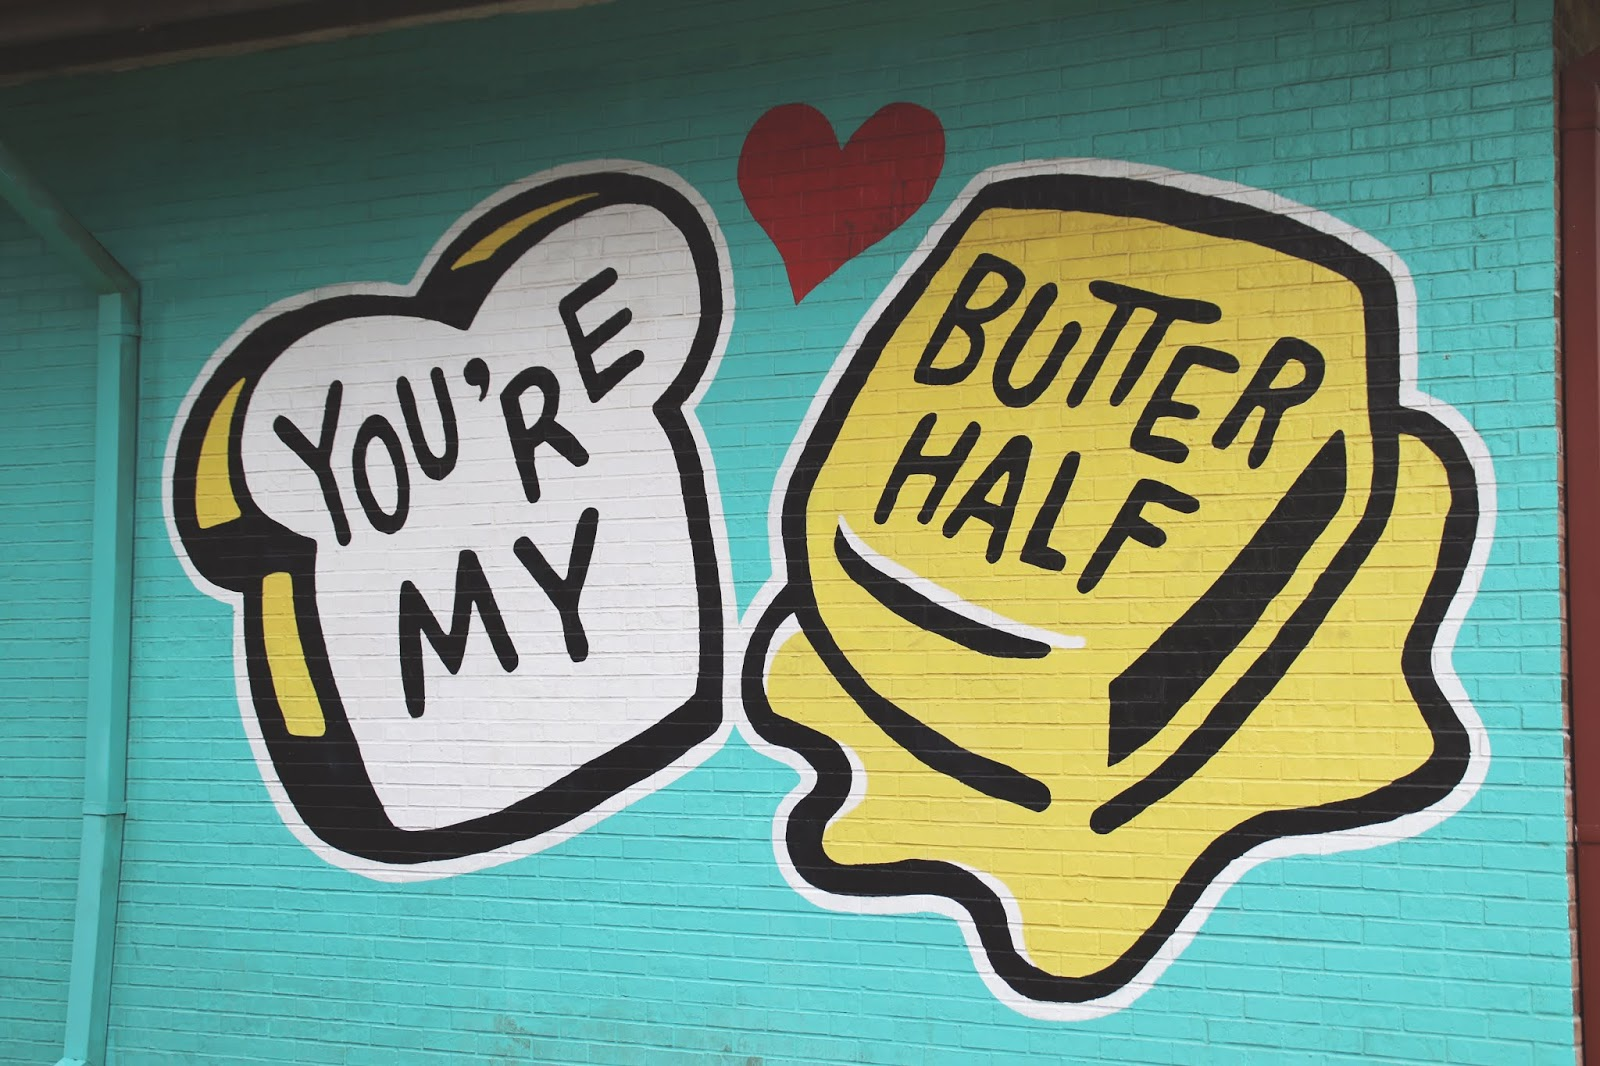 austin texas you're my butter half mural address, austin texas murals, murals in austin, photo spots in austin